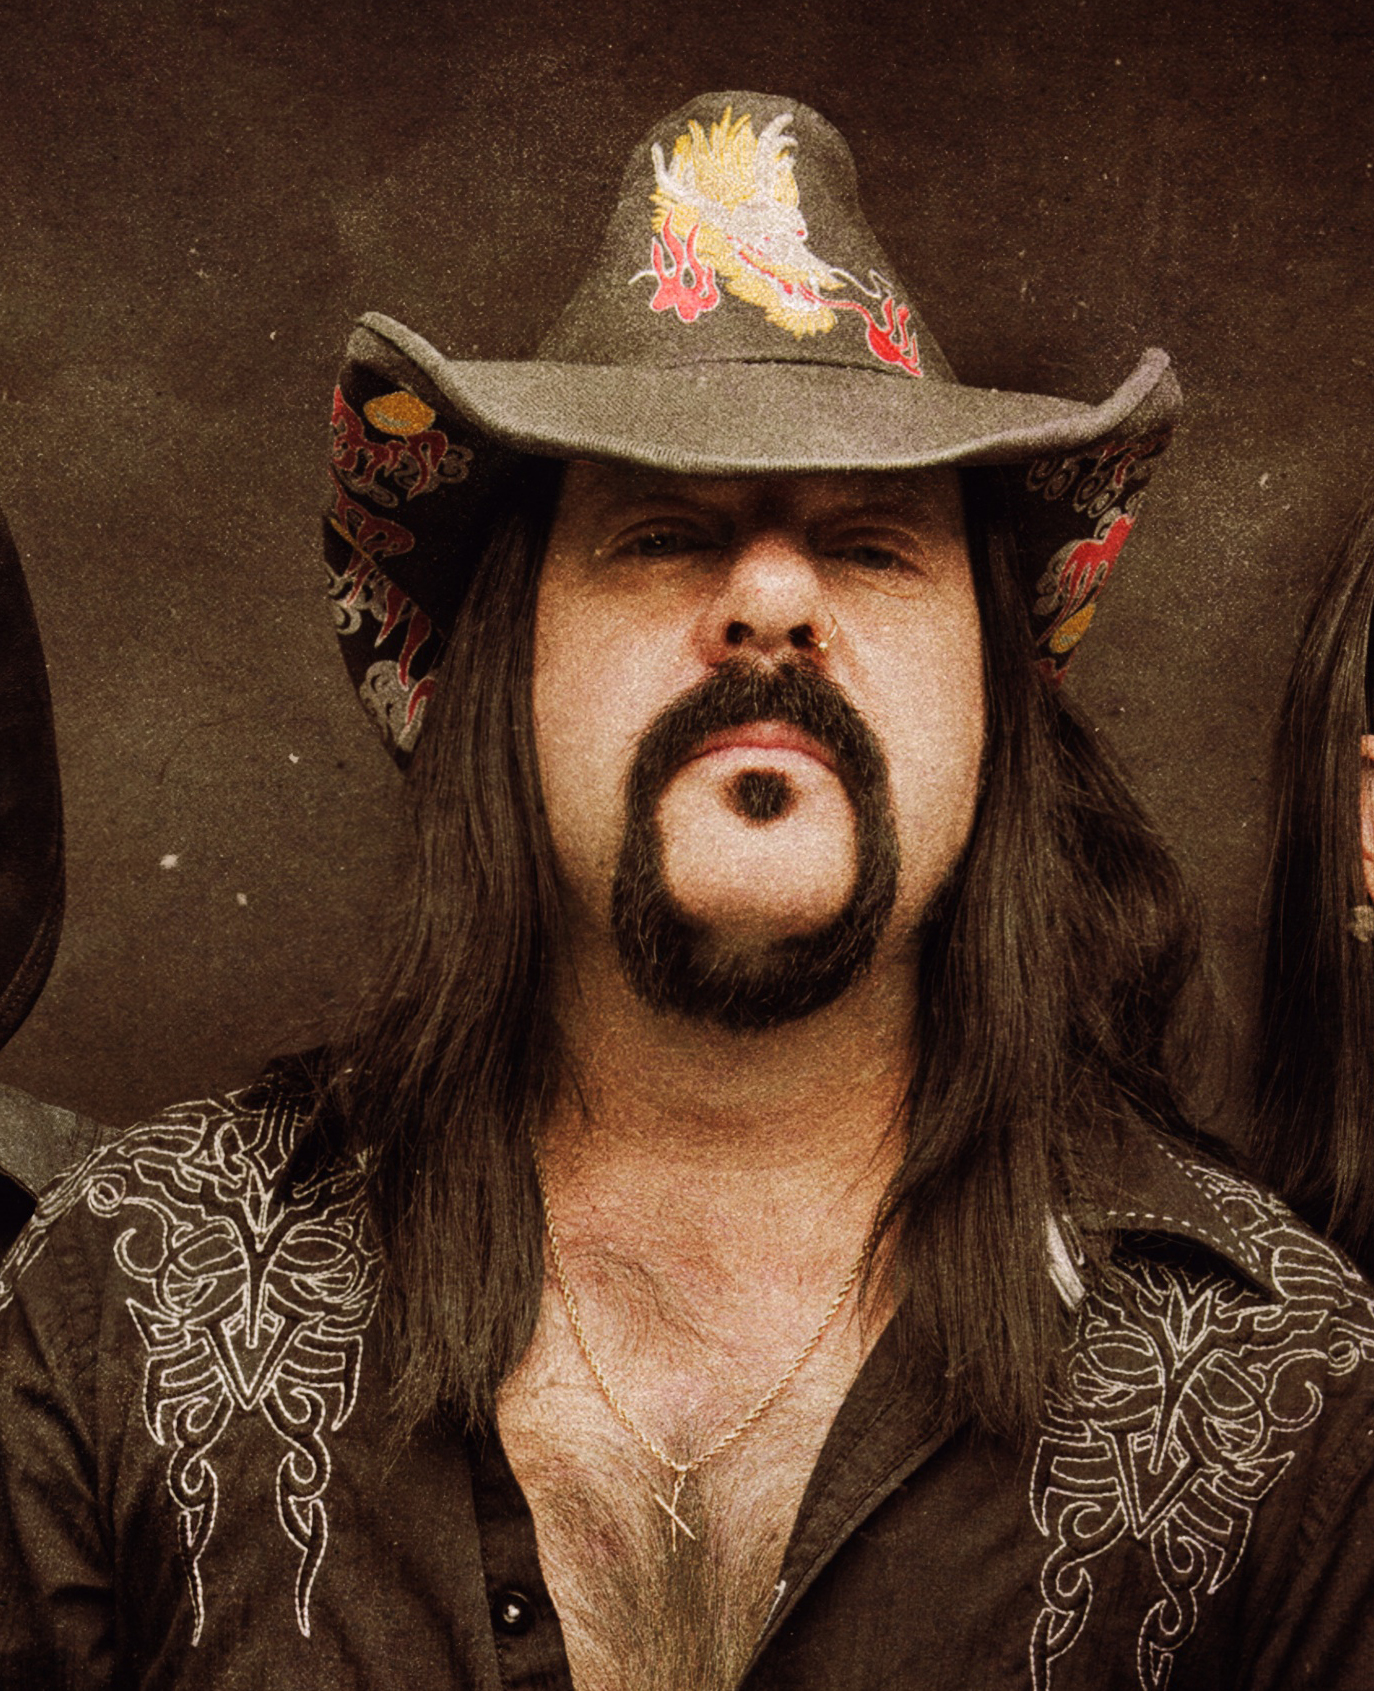 Vinnie Paul- The Entrepreneurial Rockstar